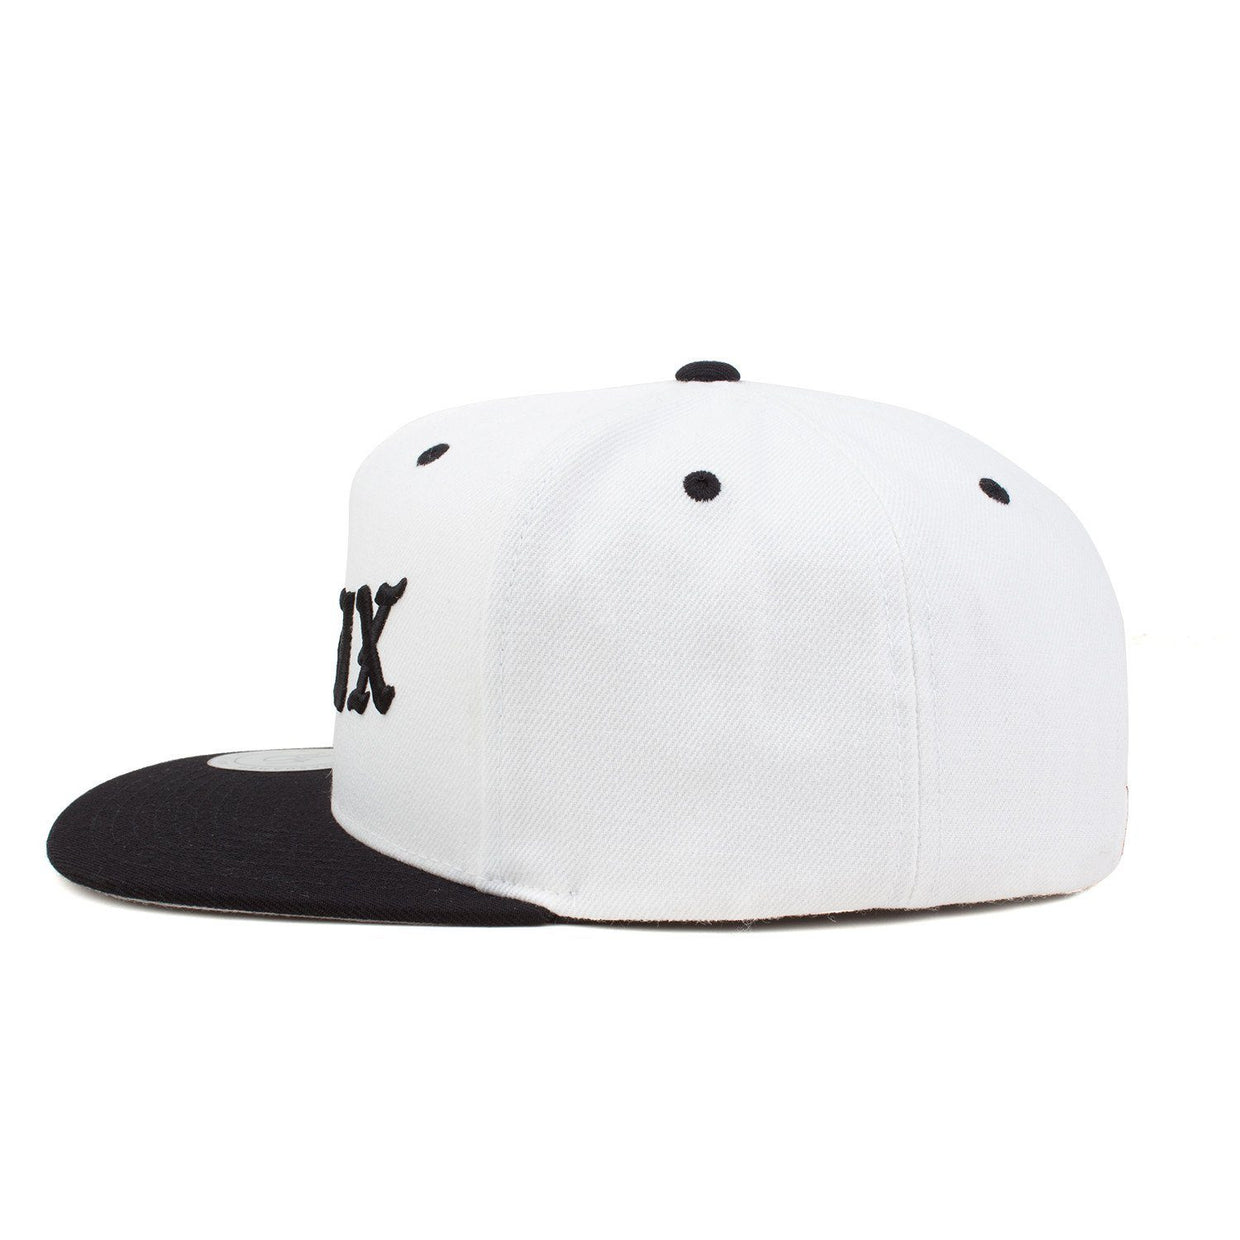 116 Drifter Collection 'Old English' Snapback